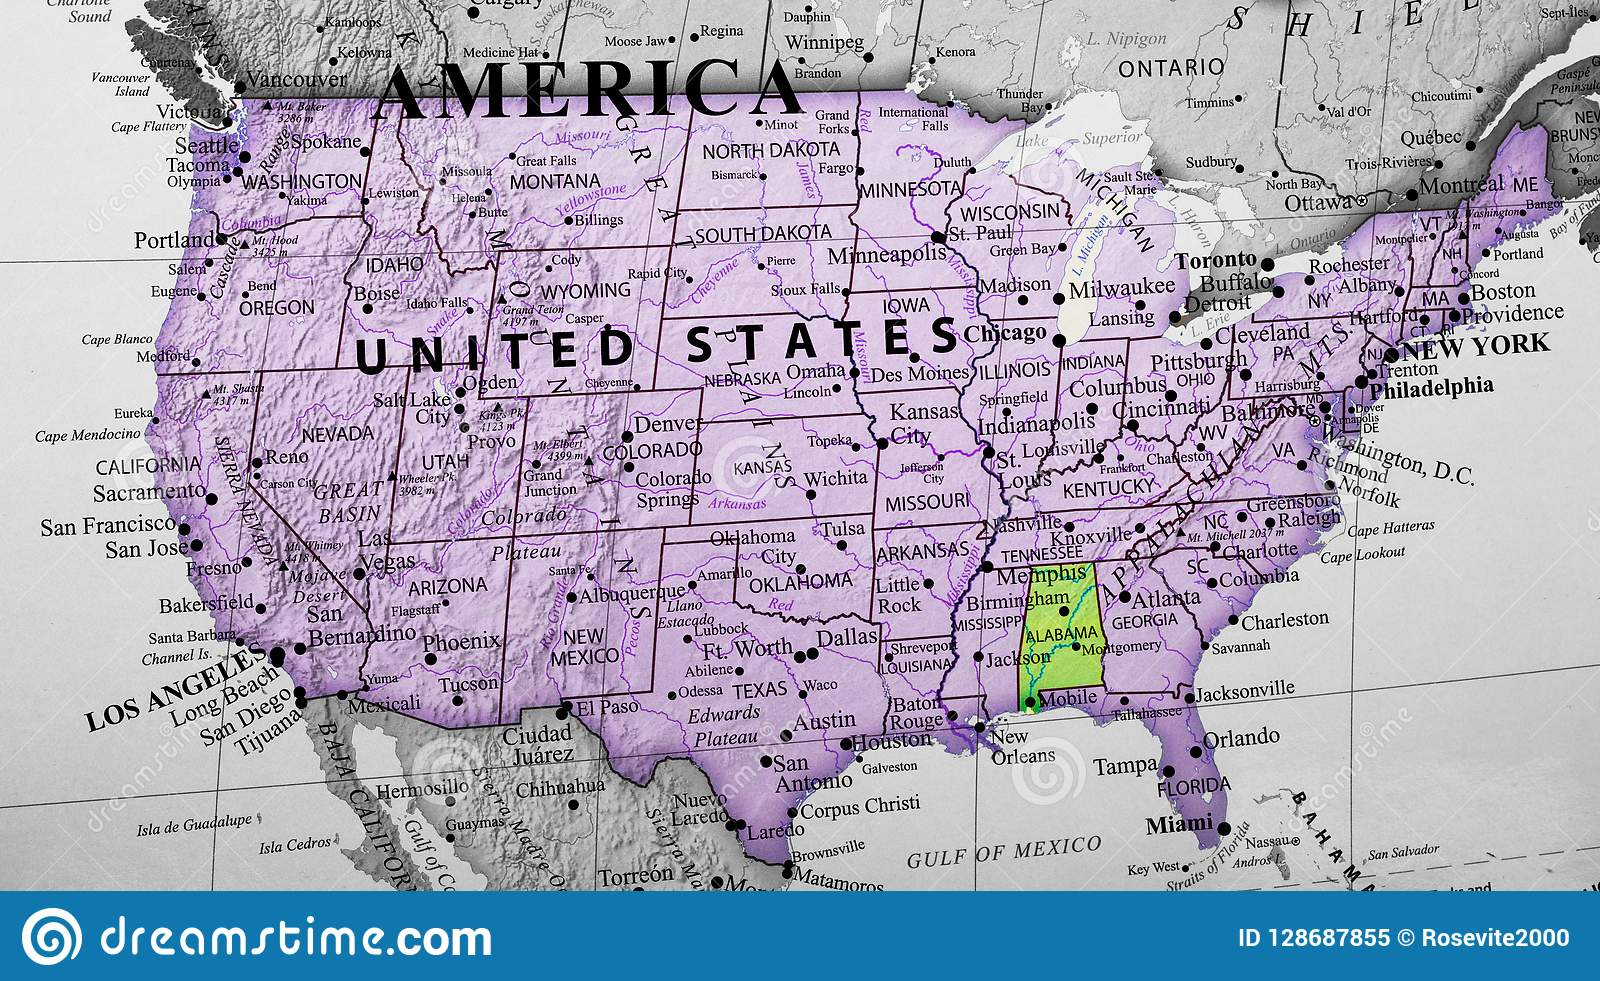 Alabama United States Map.Map Of United States Of America Highlighting Alabama State Stock